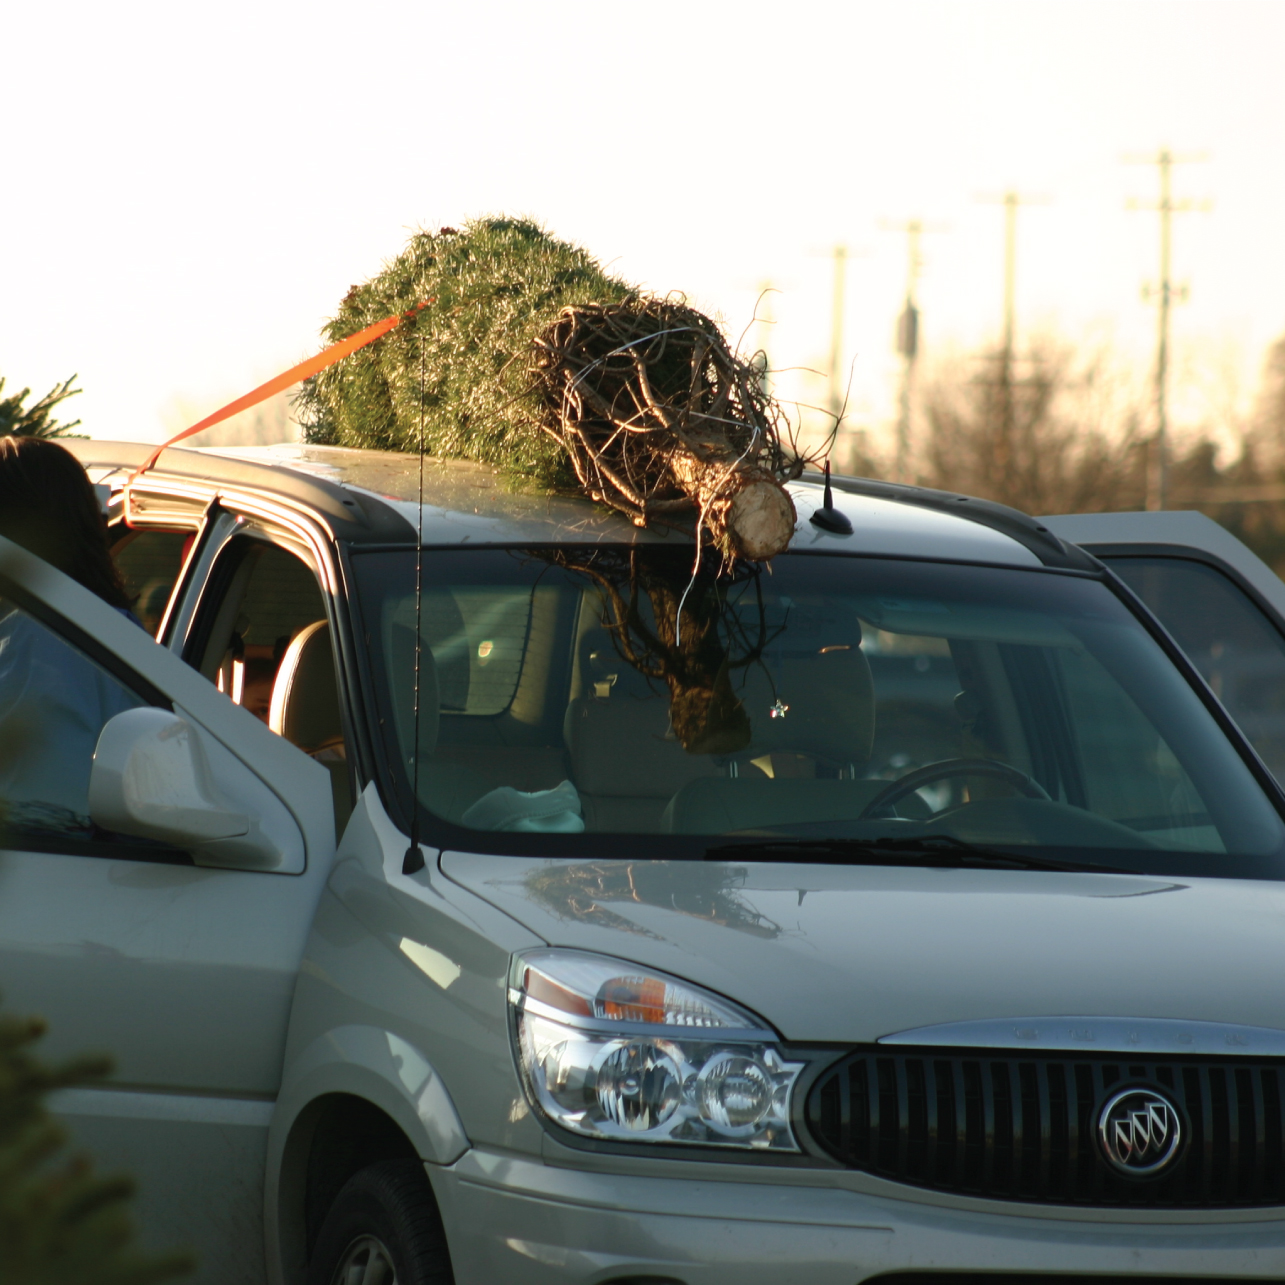 take it home - Pack up your tree and get ready to make new memories that will last a lifetime.